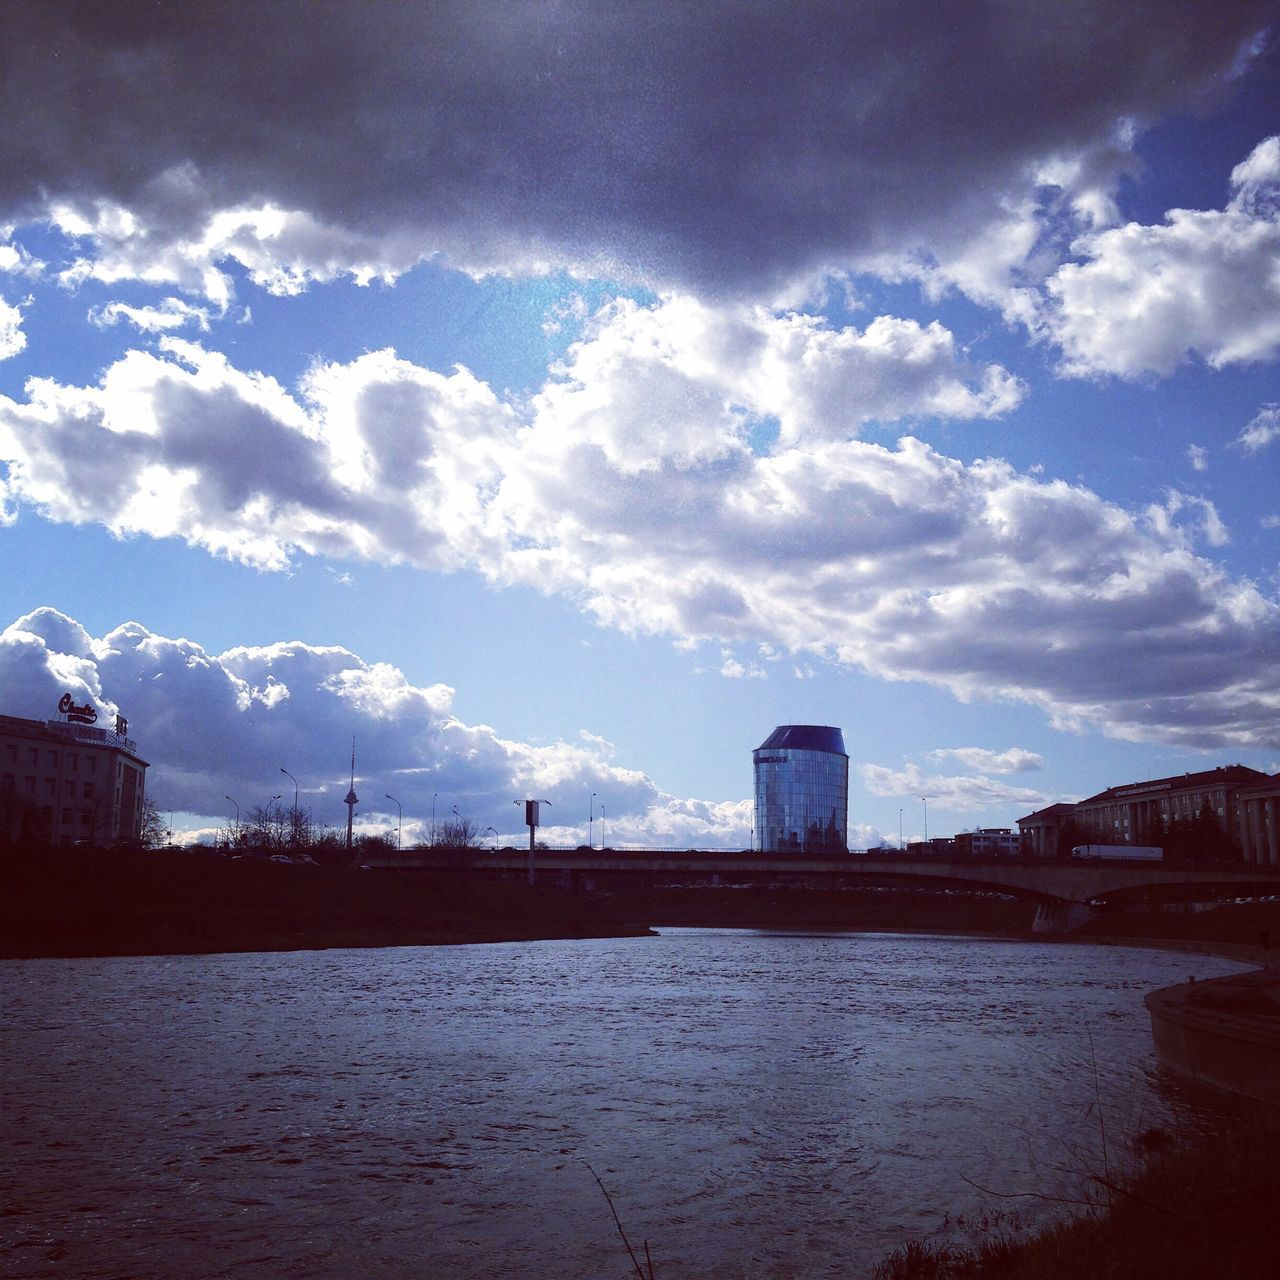 Architecture Sky Vilnius River Riverside River View Skyscraper Sky And Clouds Built Structure City Bridge Cloud - Sky Building Exterior Water No People Outdoors Day Nature City Industry Beauty In Nature TV Tower Reflection Water Reflections Clouds And Sky